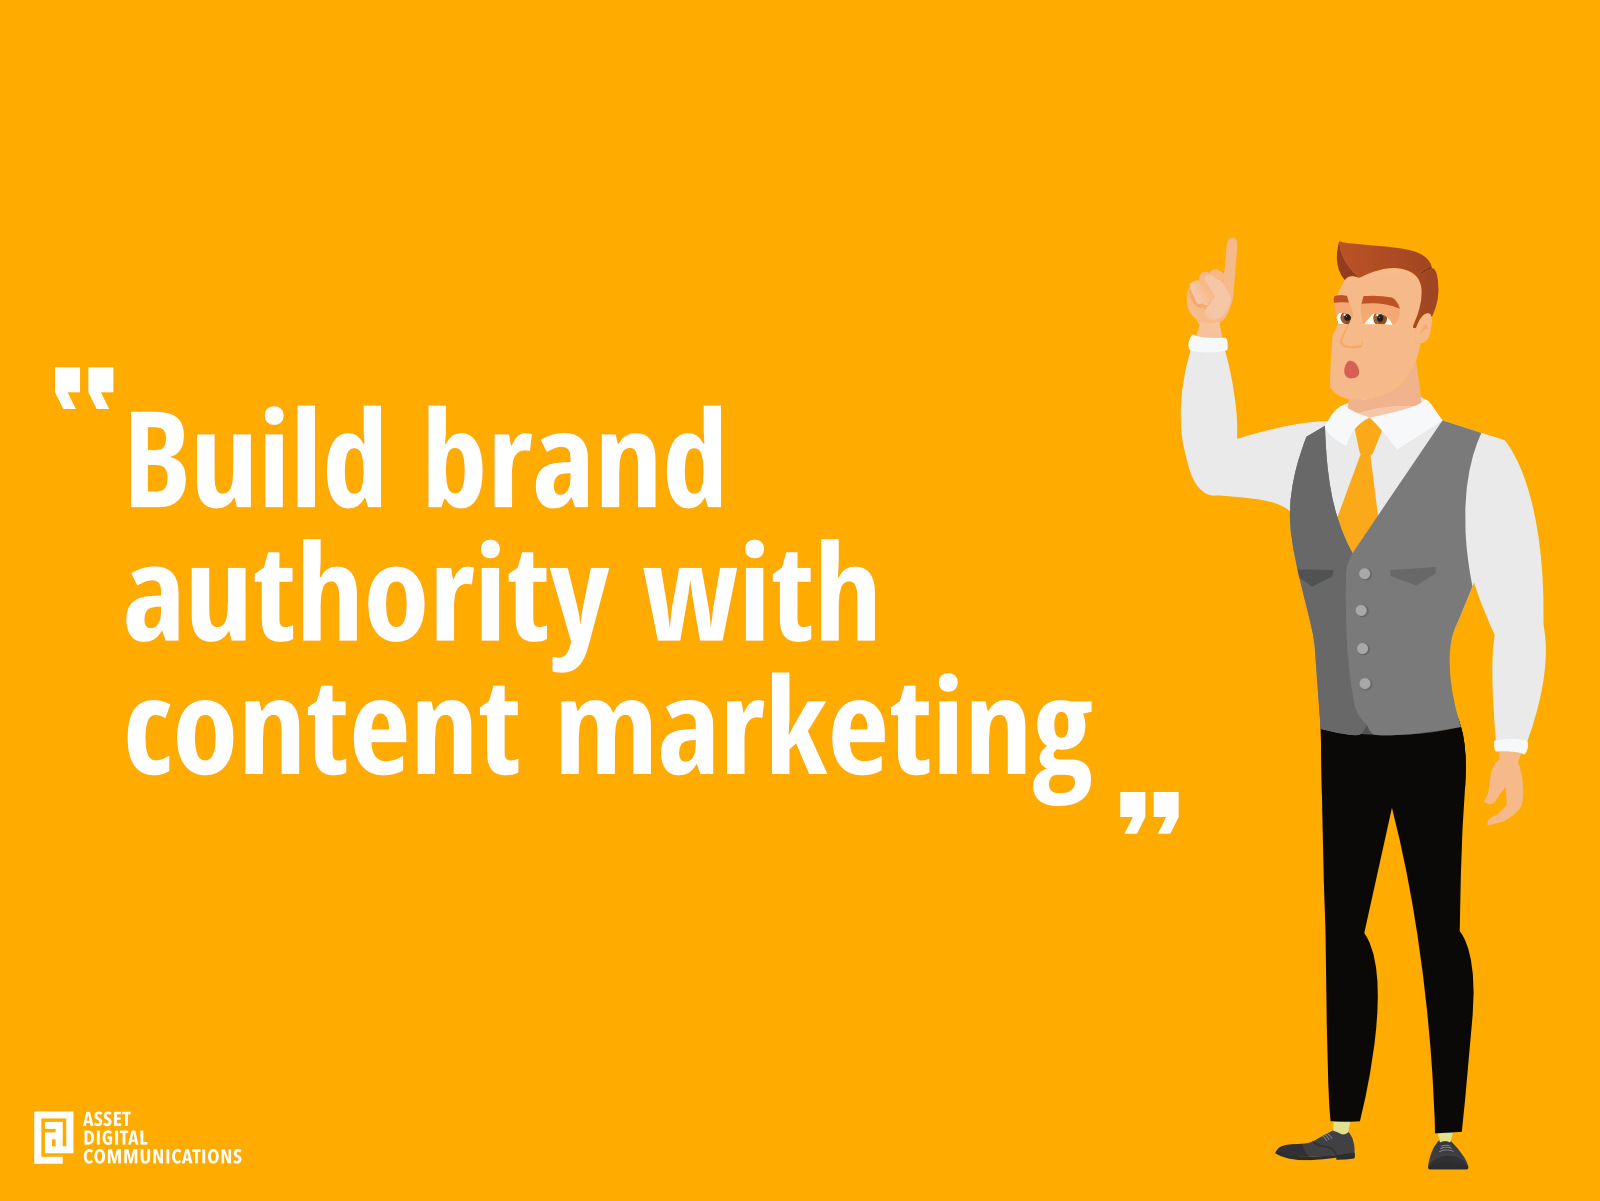 Build brand authority with content marketing | Asset Digital Communications